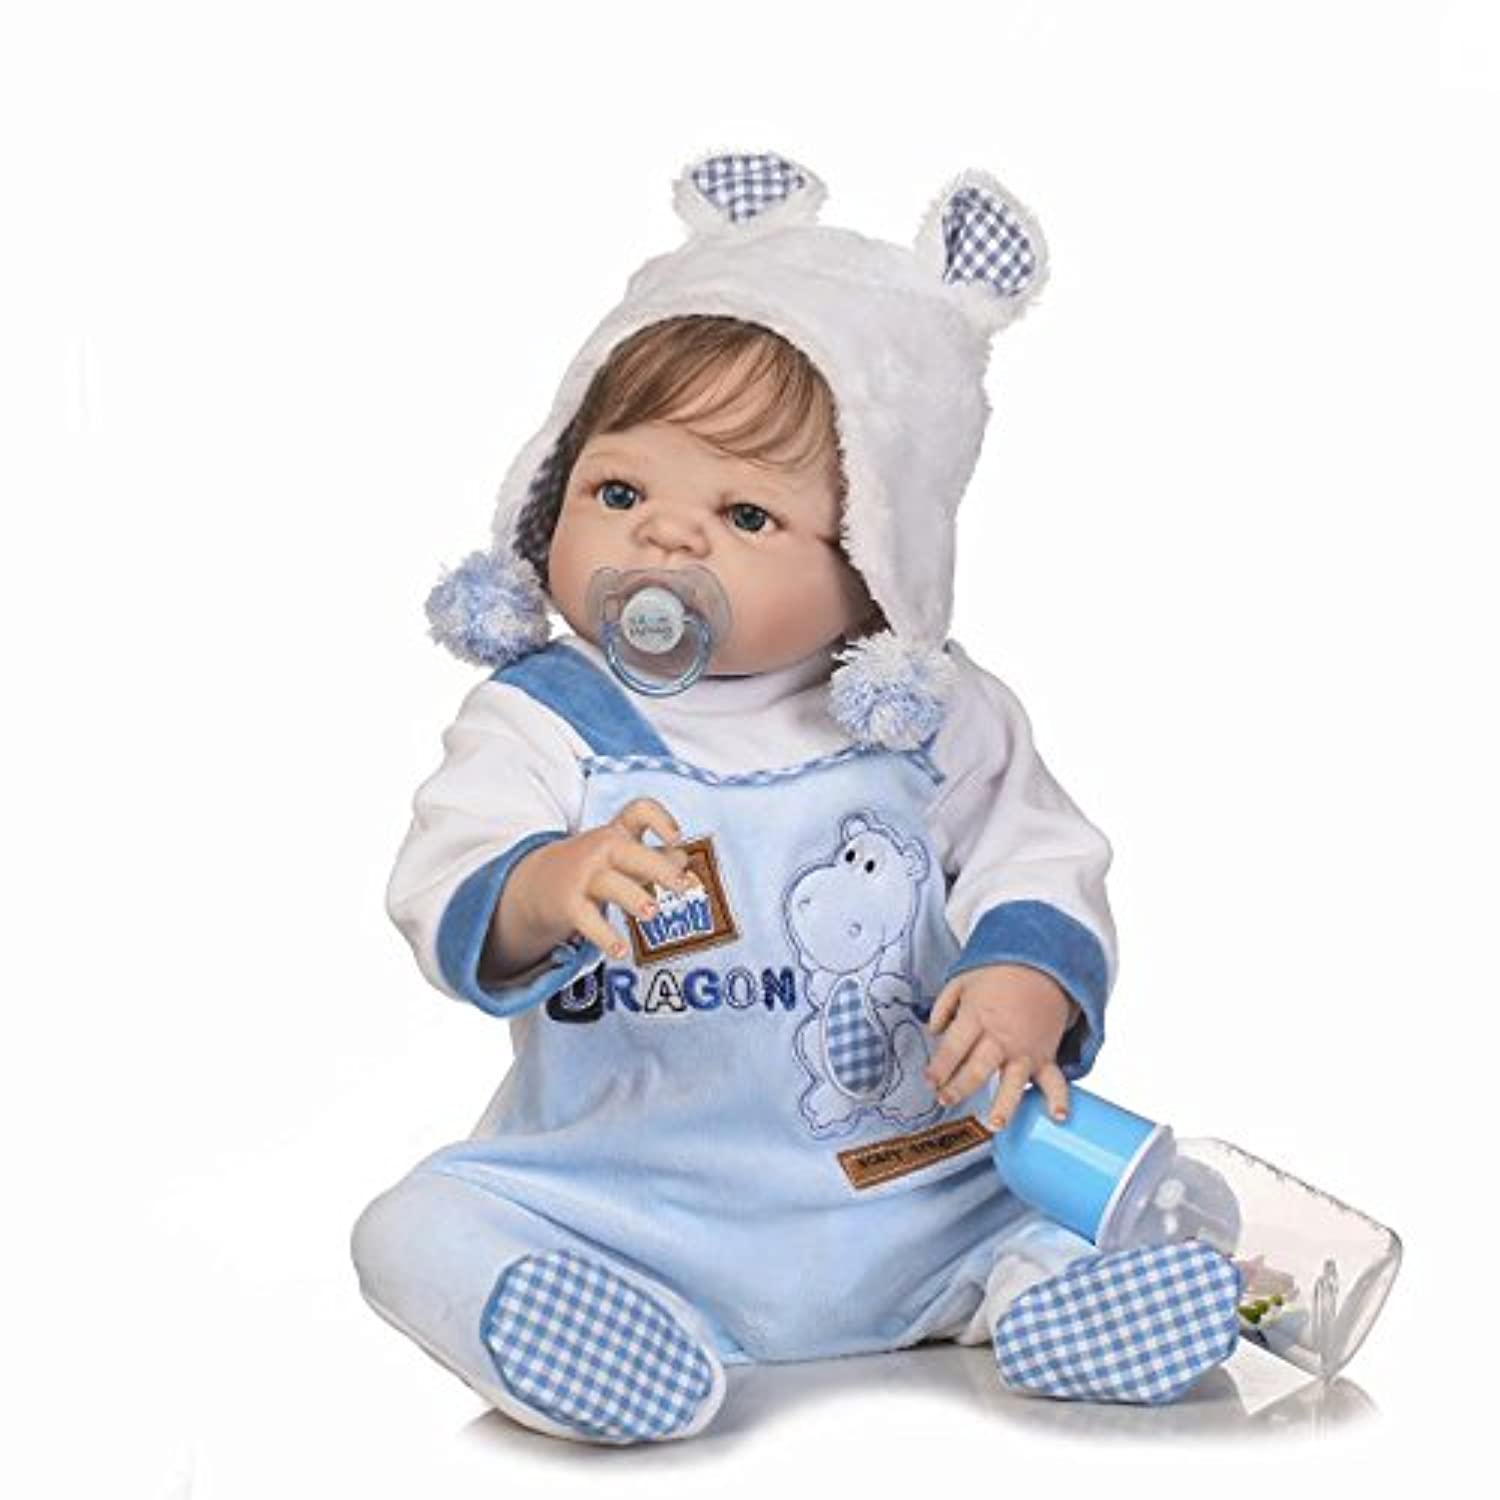 Realistic Lifelike Baby Boy Toddler Toy 23 Inch 57cm Soft Silicone Reborn Baby Doll Handmade Full Body Vinyl Newborn Dolls Anatomically Correct Xmas Gift